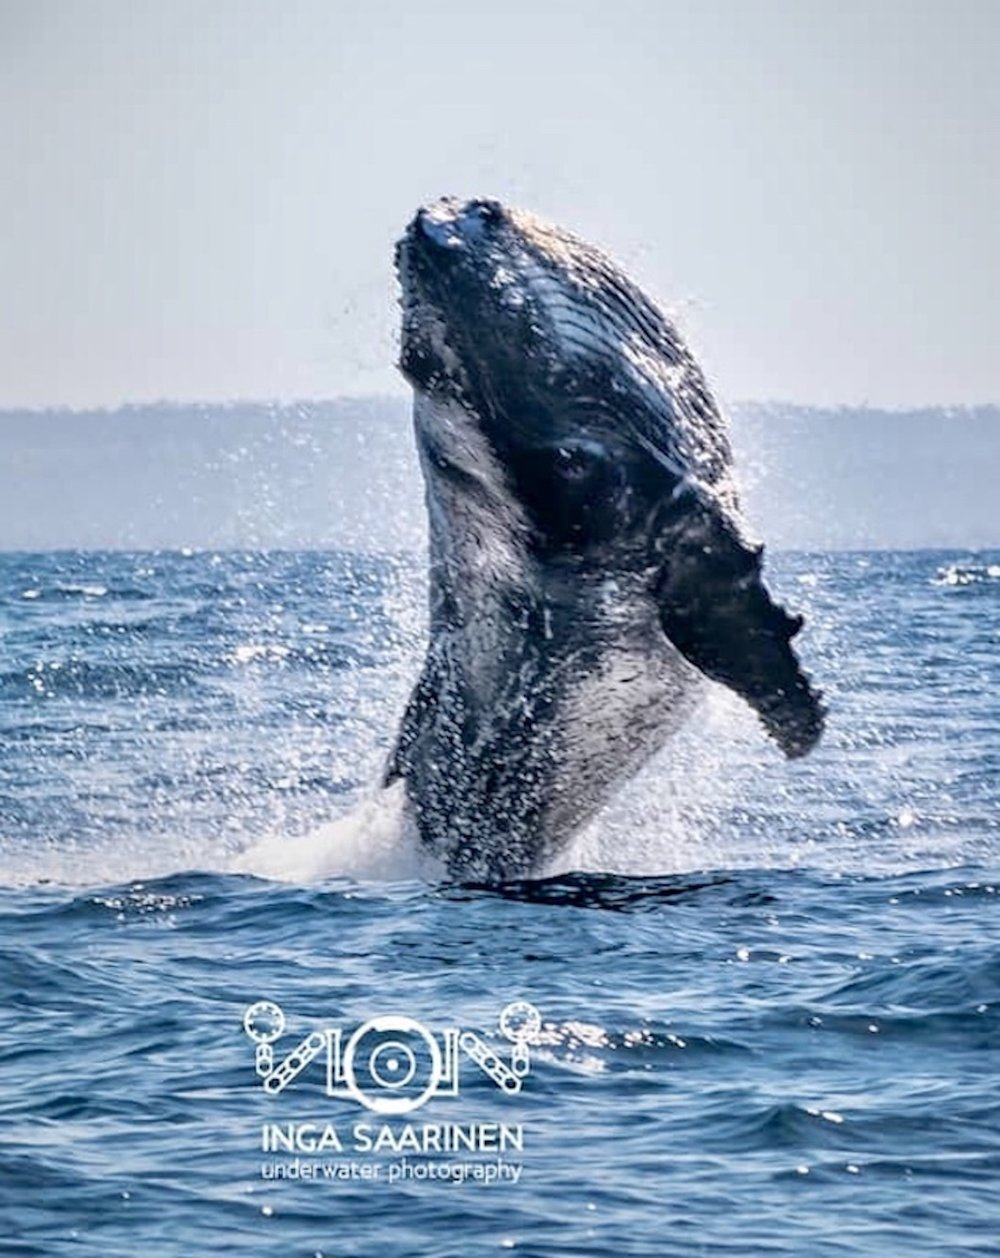 Intensive Whale Week - 7 nights in Wuyani Pariango Beach Motel chalet with own shower and toiletBreakfast at our HAPPI restaurantPADI FREEDIVER course2 half day whale watching tours with a researcher or our own whale expertDrinking water and snacks on boardPer single person 632€2 people sharing 506€ (per person)